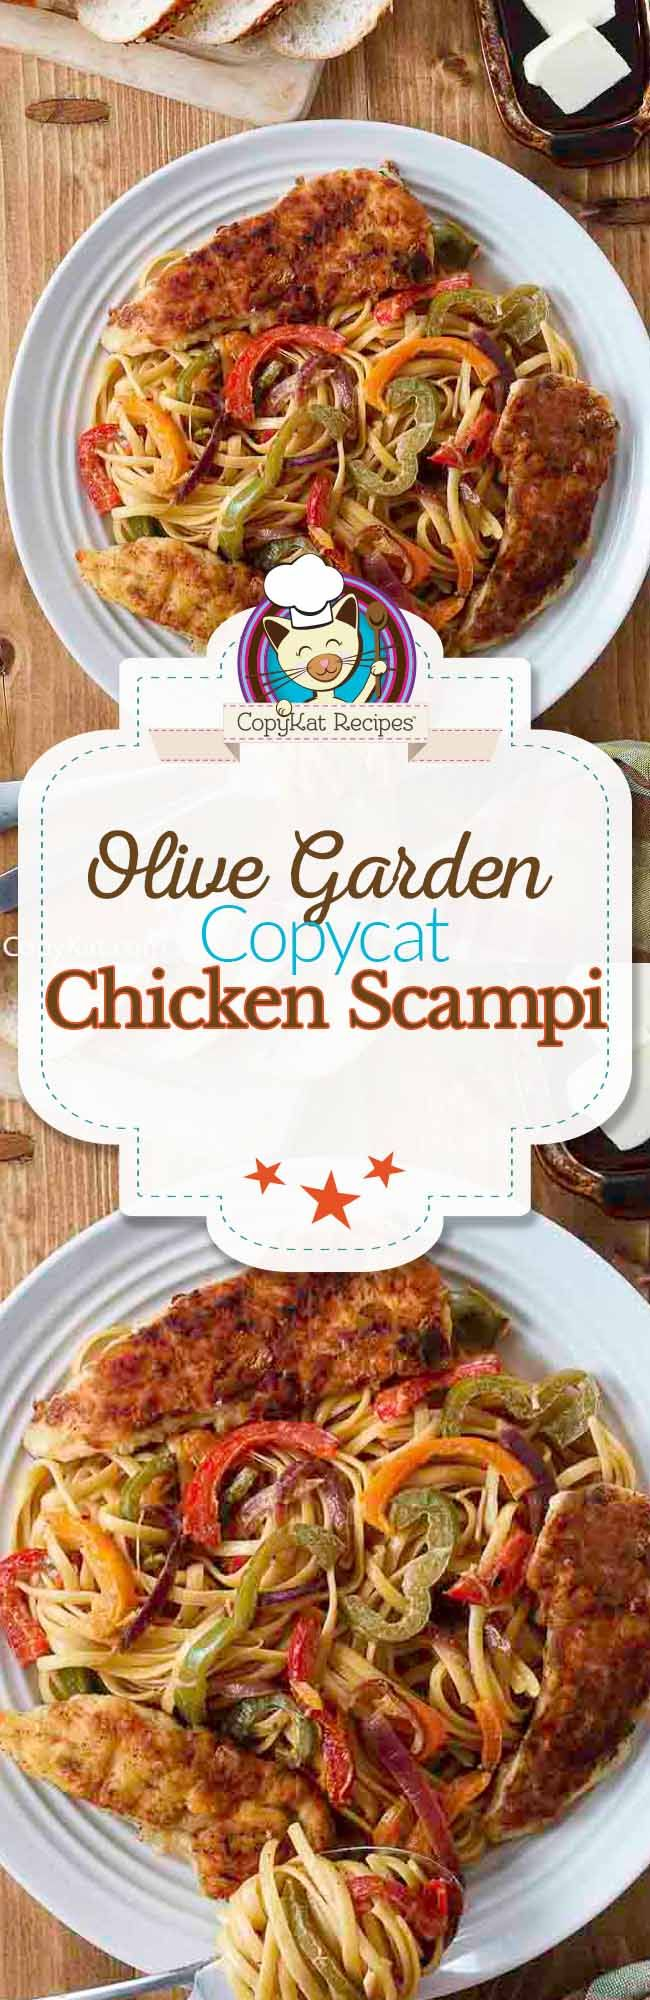 Make this copycat recipe for Olive Garden Chicken Scampi, this recipe is full of fresh onions, peppers, and chicken.